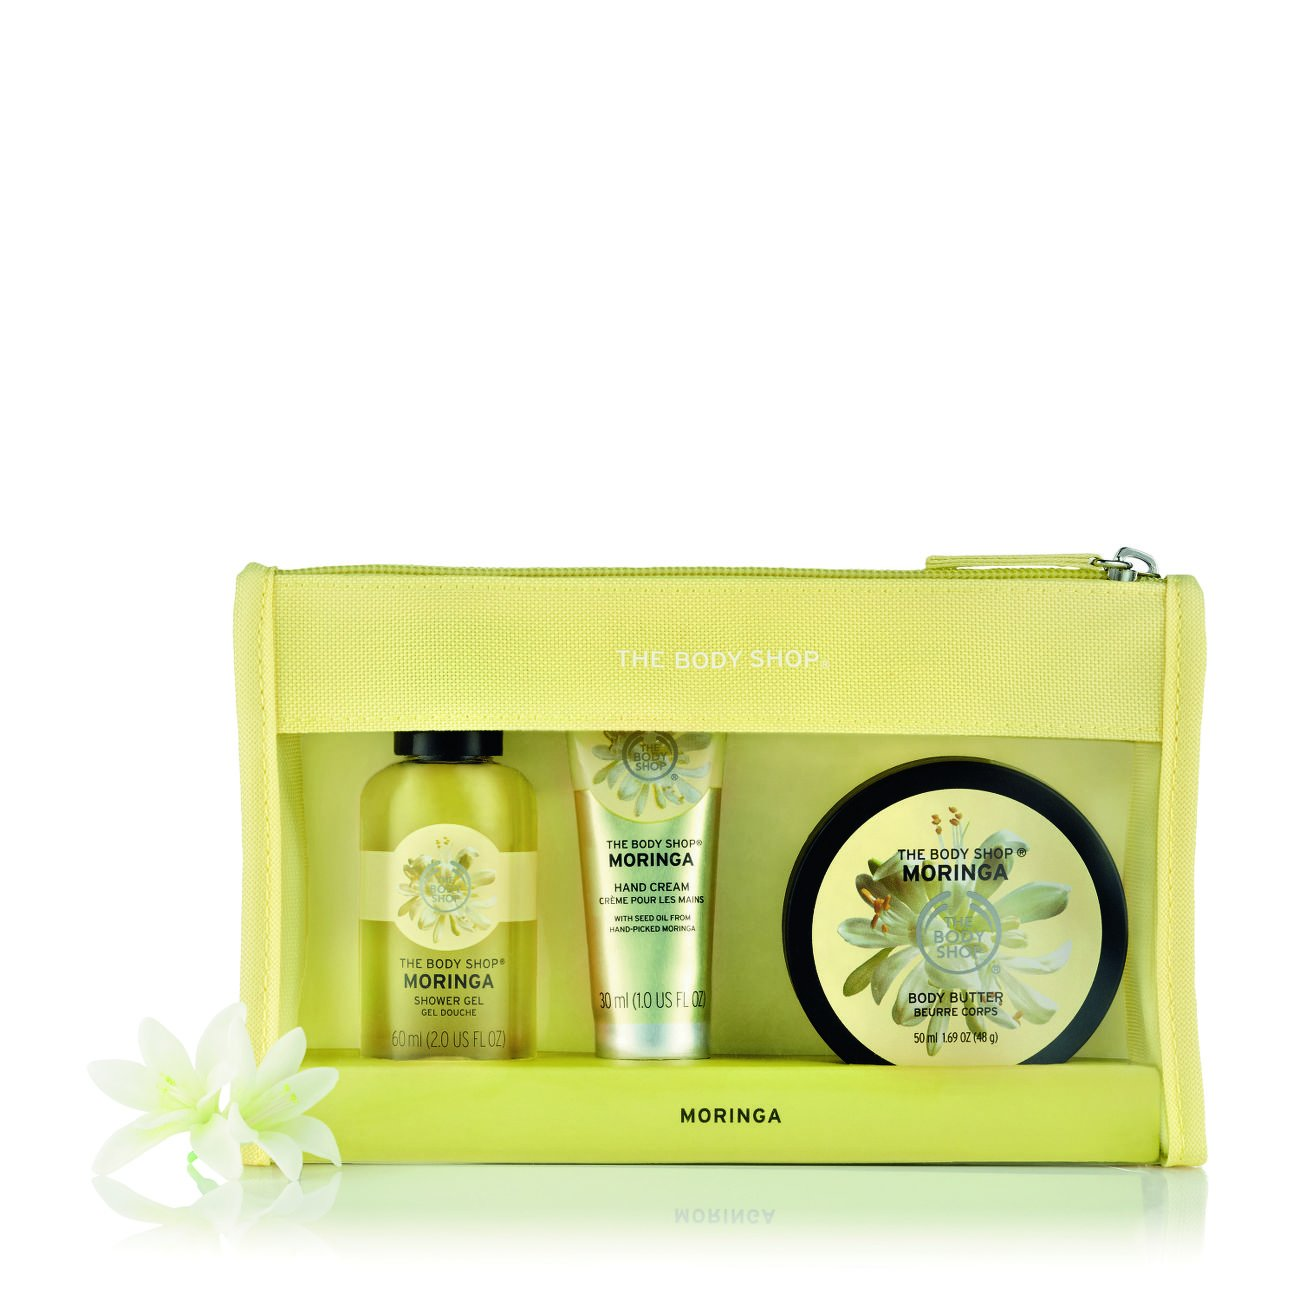 The Body Shop Moringa Gift Bag